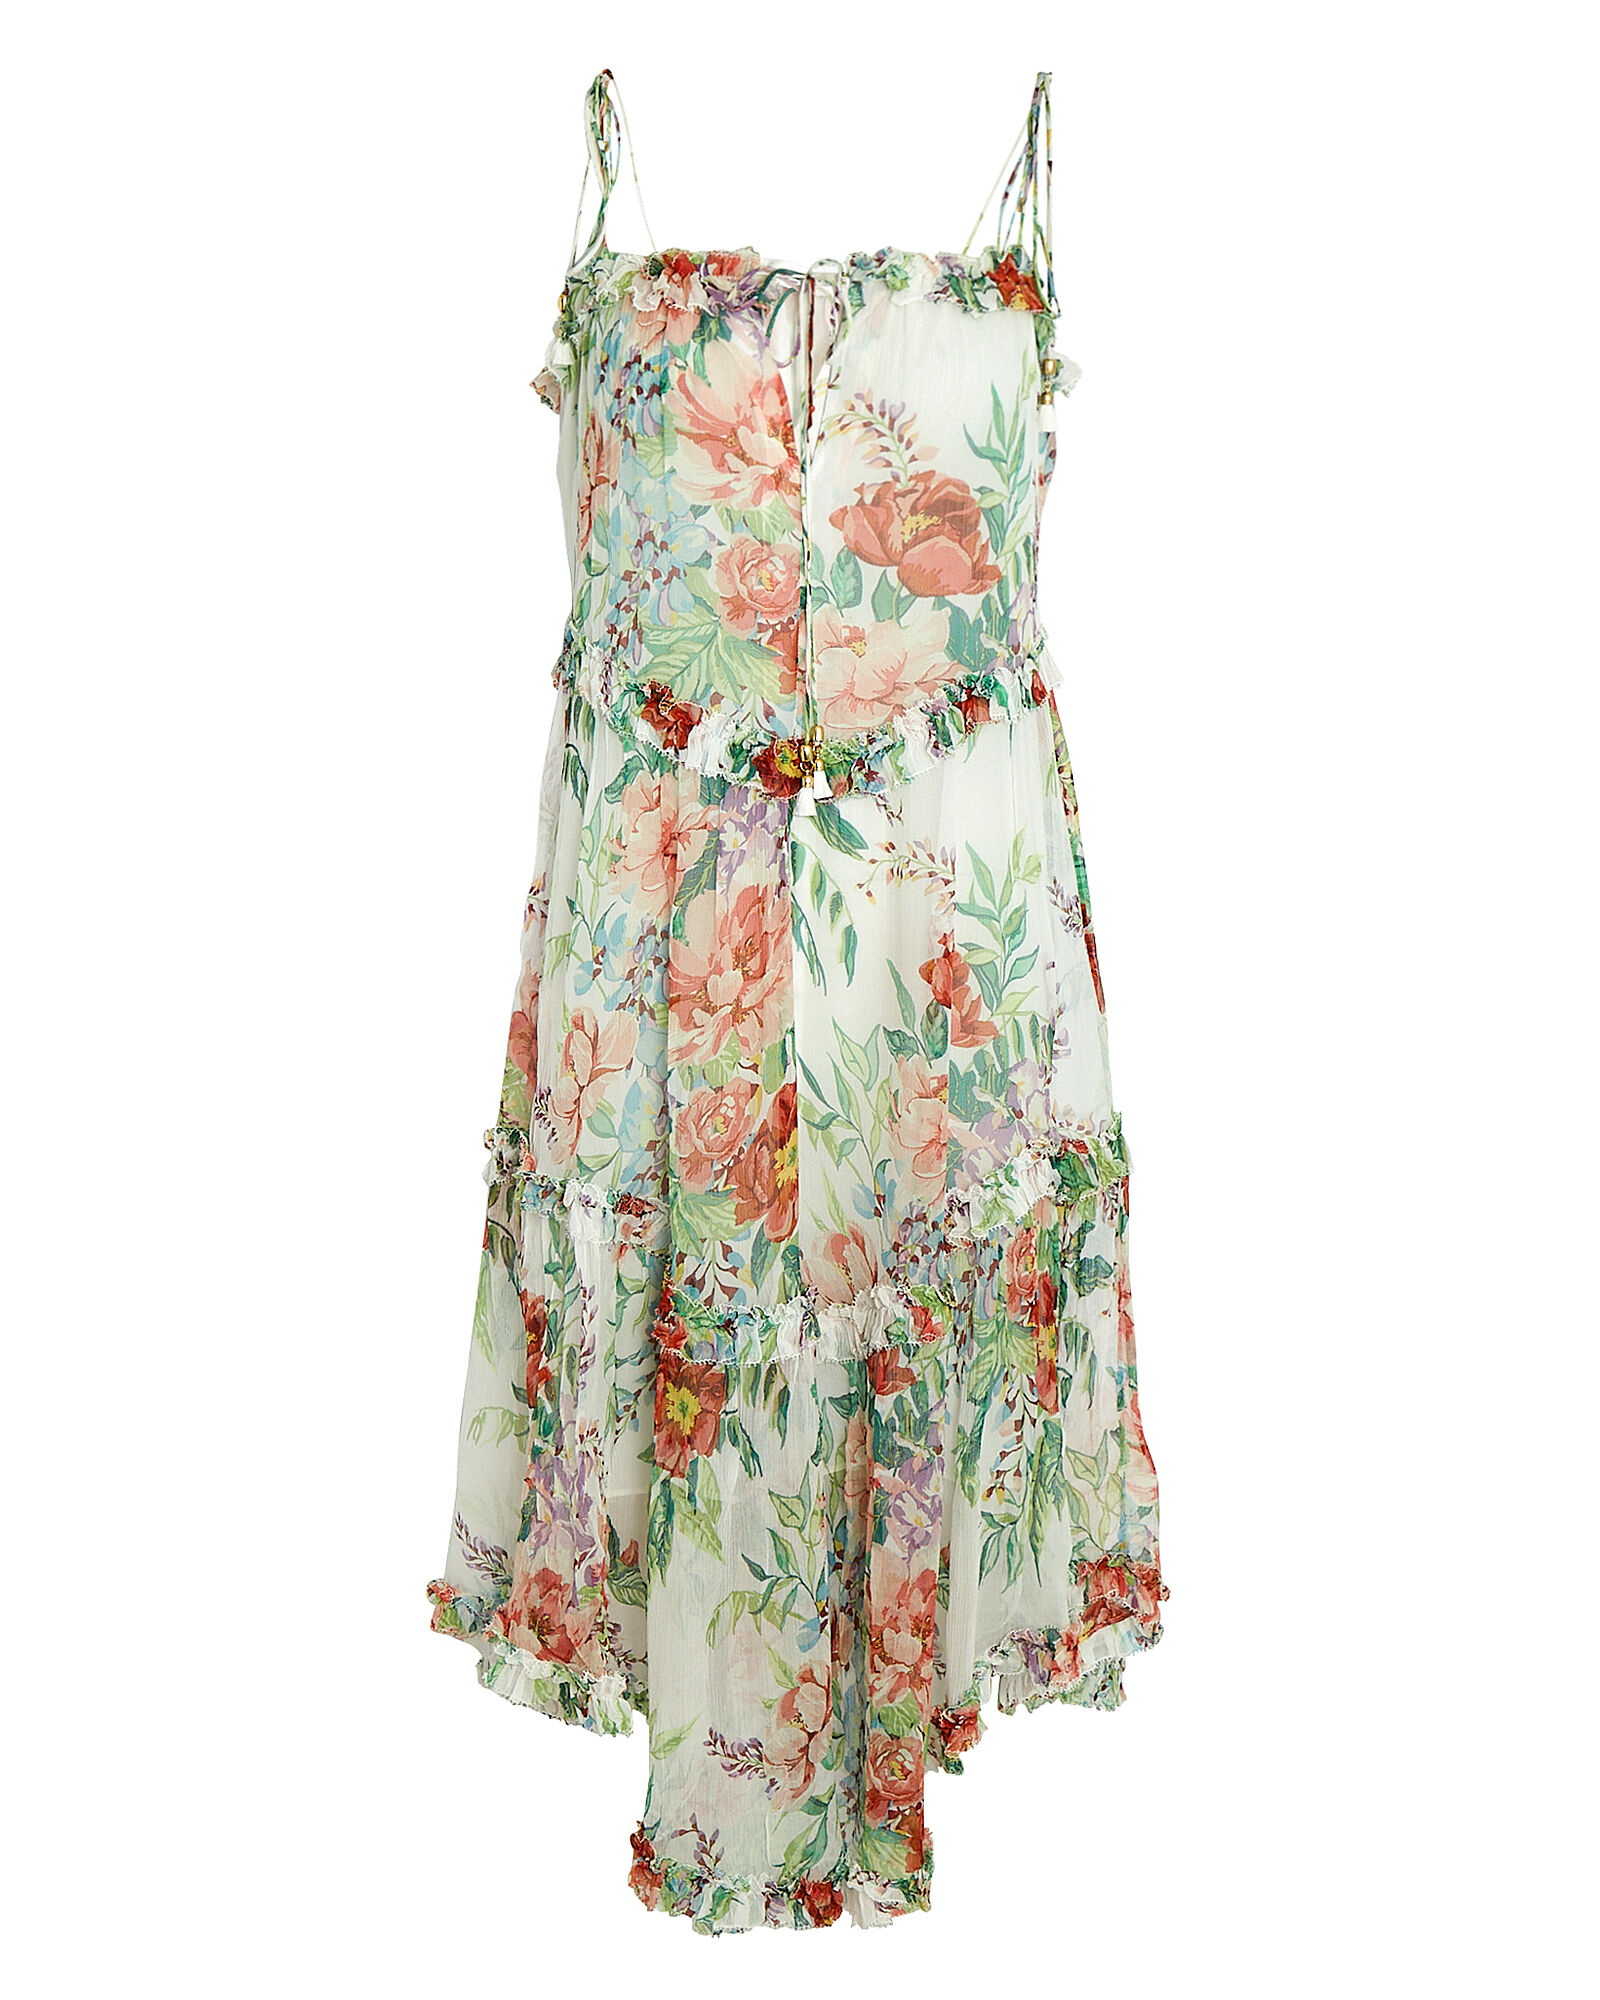 Bellitude Floral Tie-Shoulder Midi Dress, MULTI, hi-res